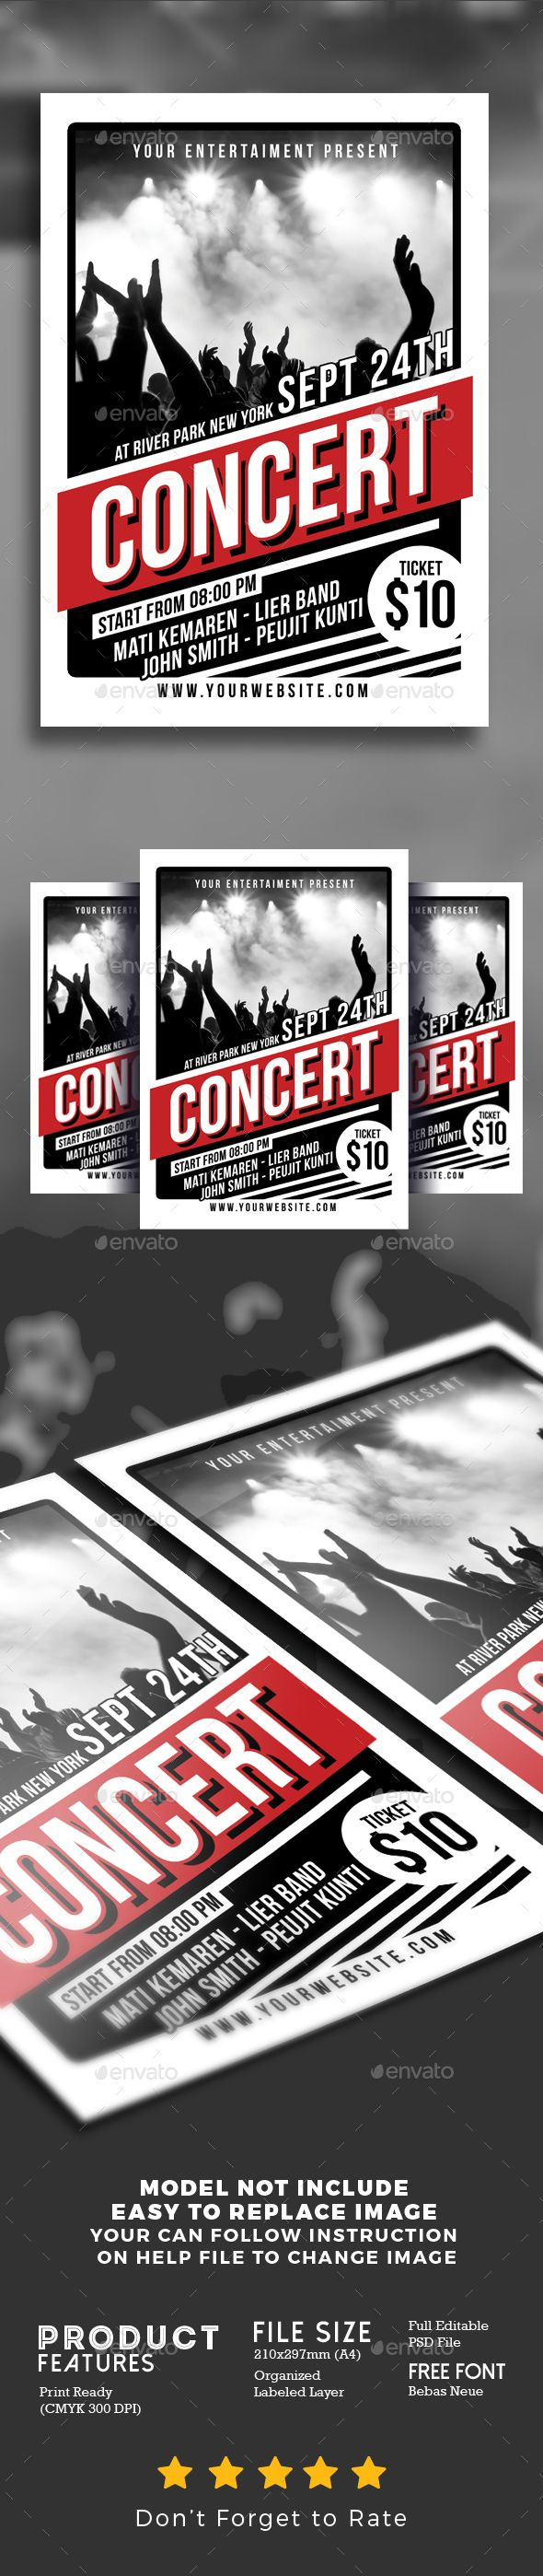 Quote poster design inspiration - Music Concert Flyer Poster